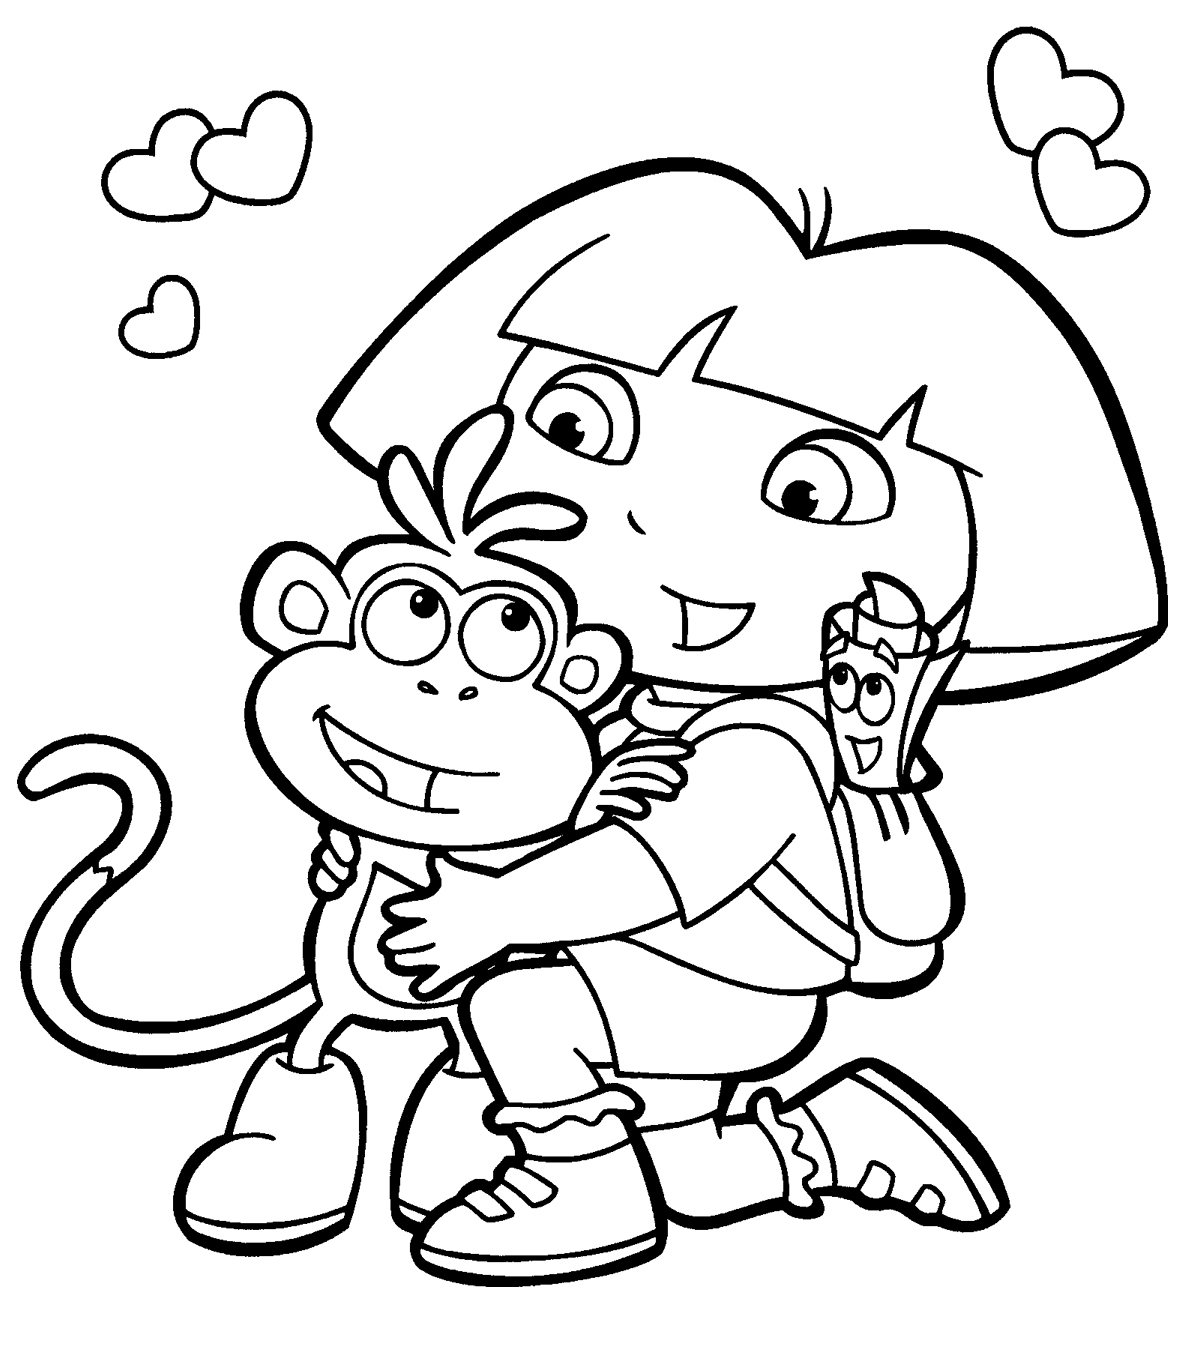 dora pictures to color and print dora the explorer 2 coloring pages coloring home color print pictures and to dora